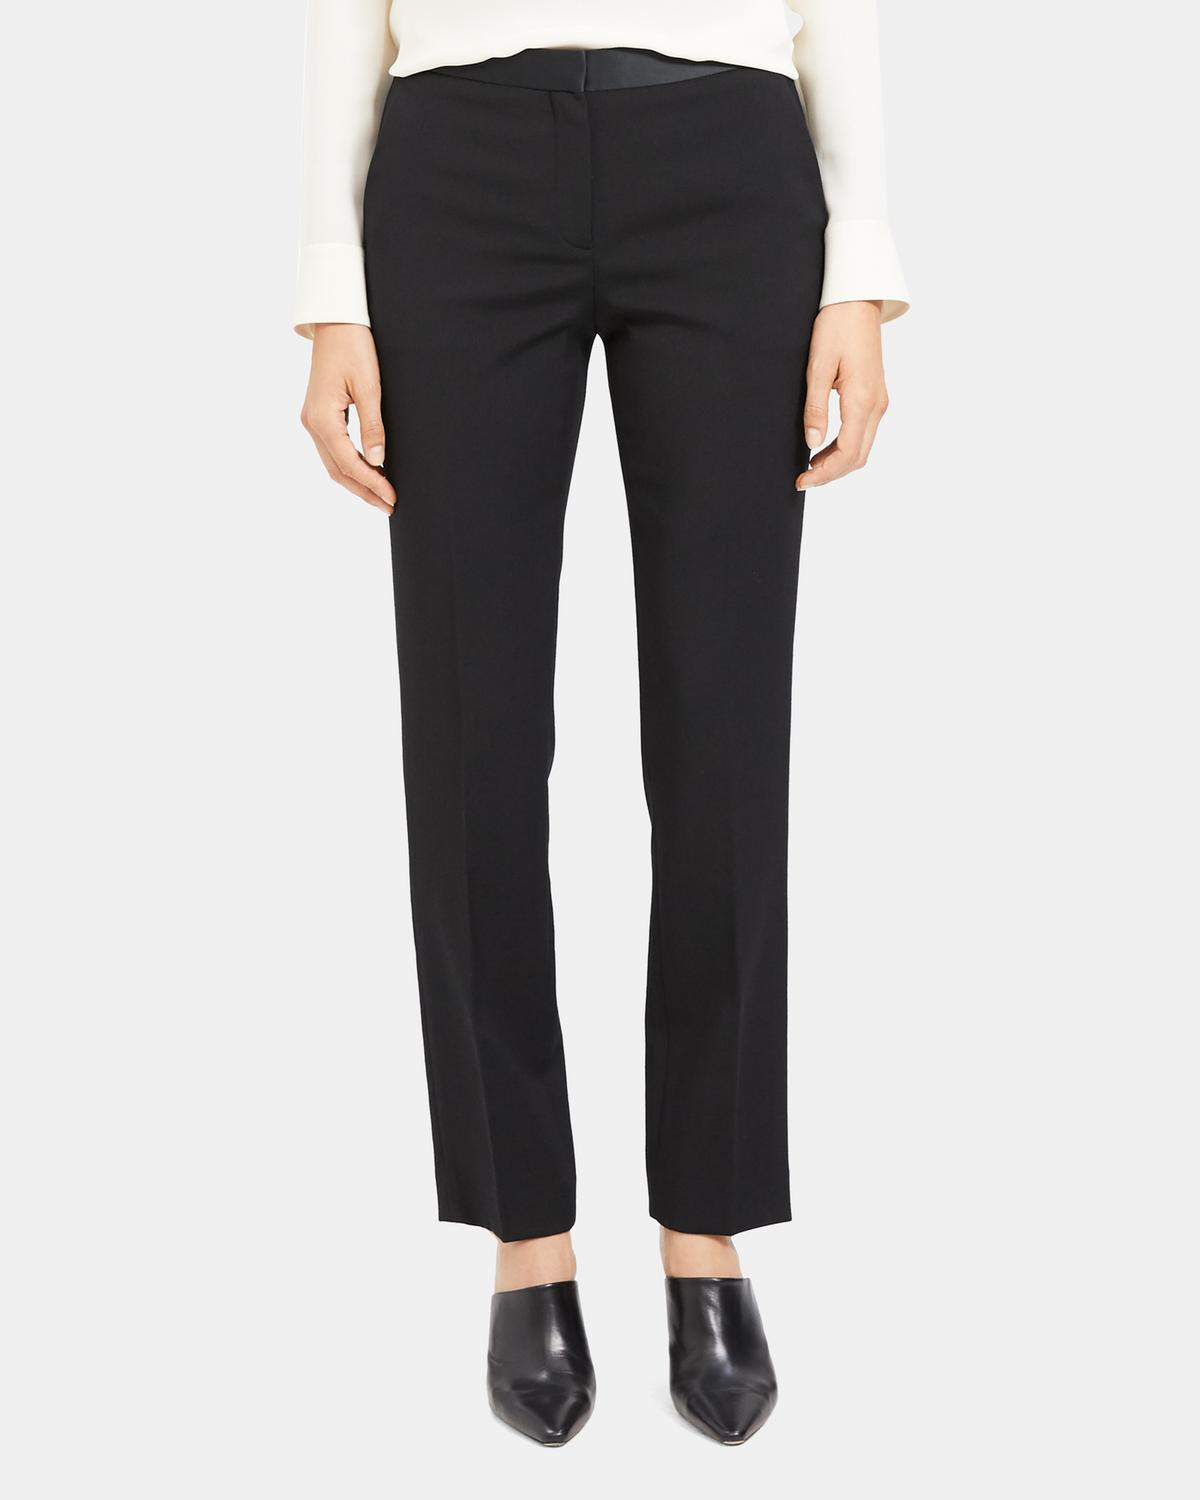 Treeca Full Length Tuxedo Pant in Stretch Wool